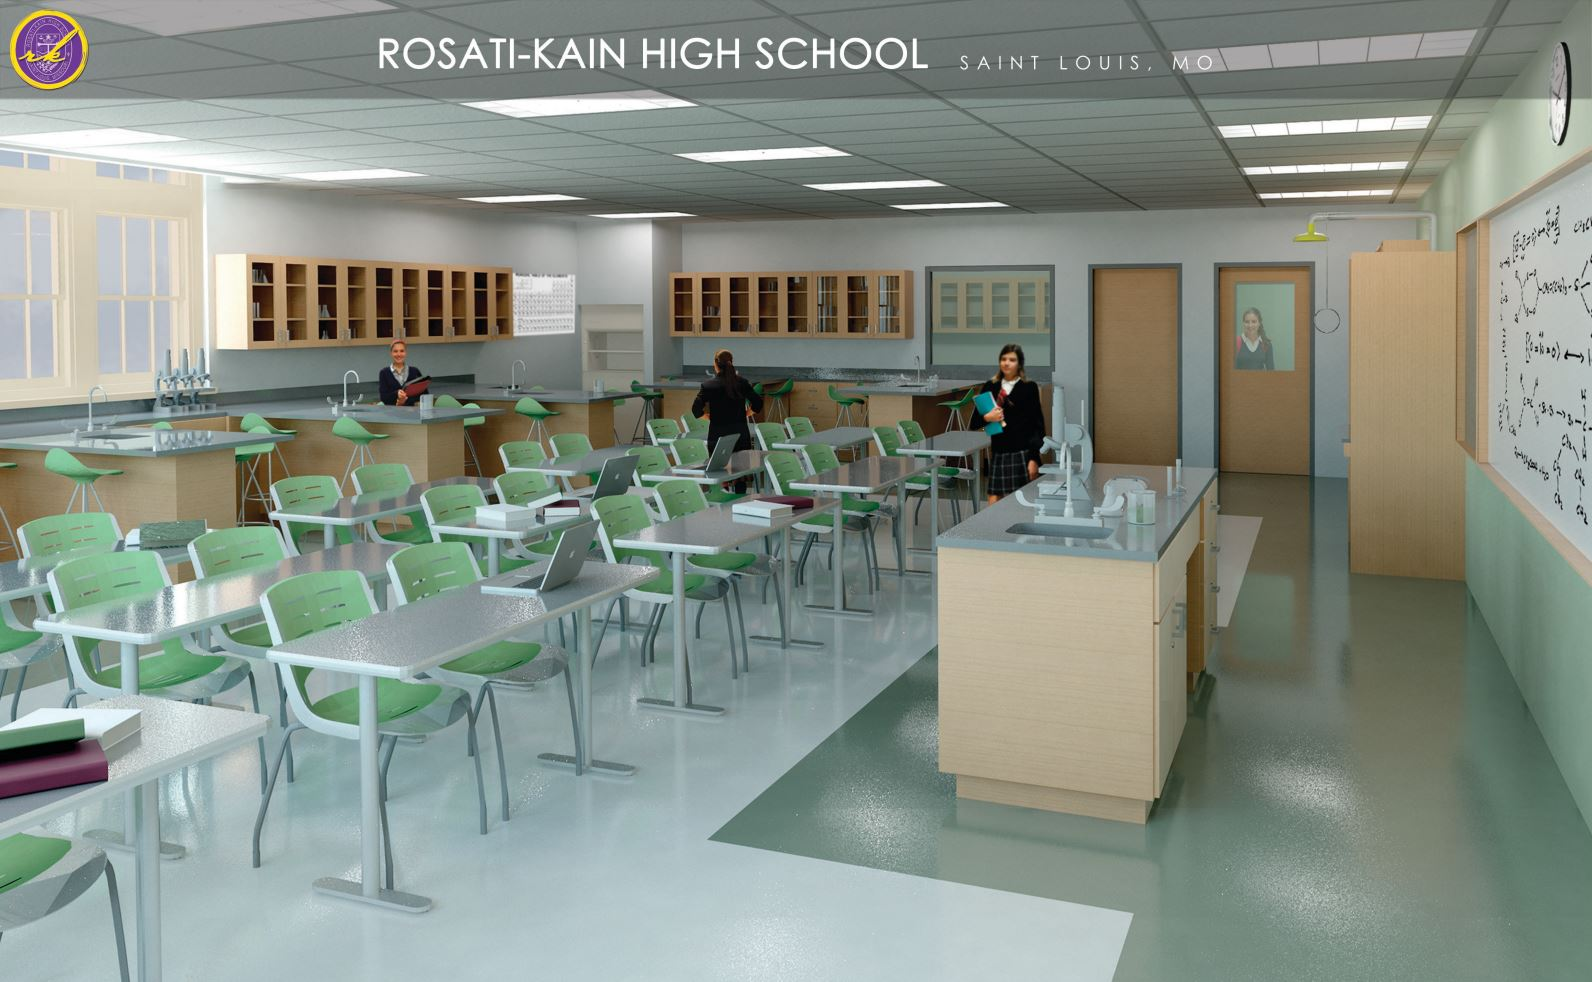 Rosati-Kain High School expansion project - St. Louis, MO